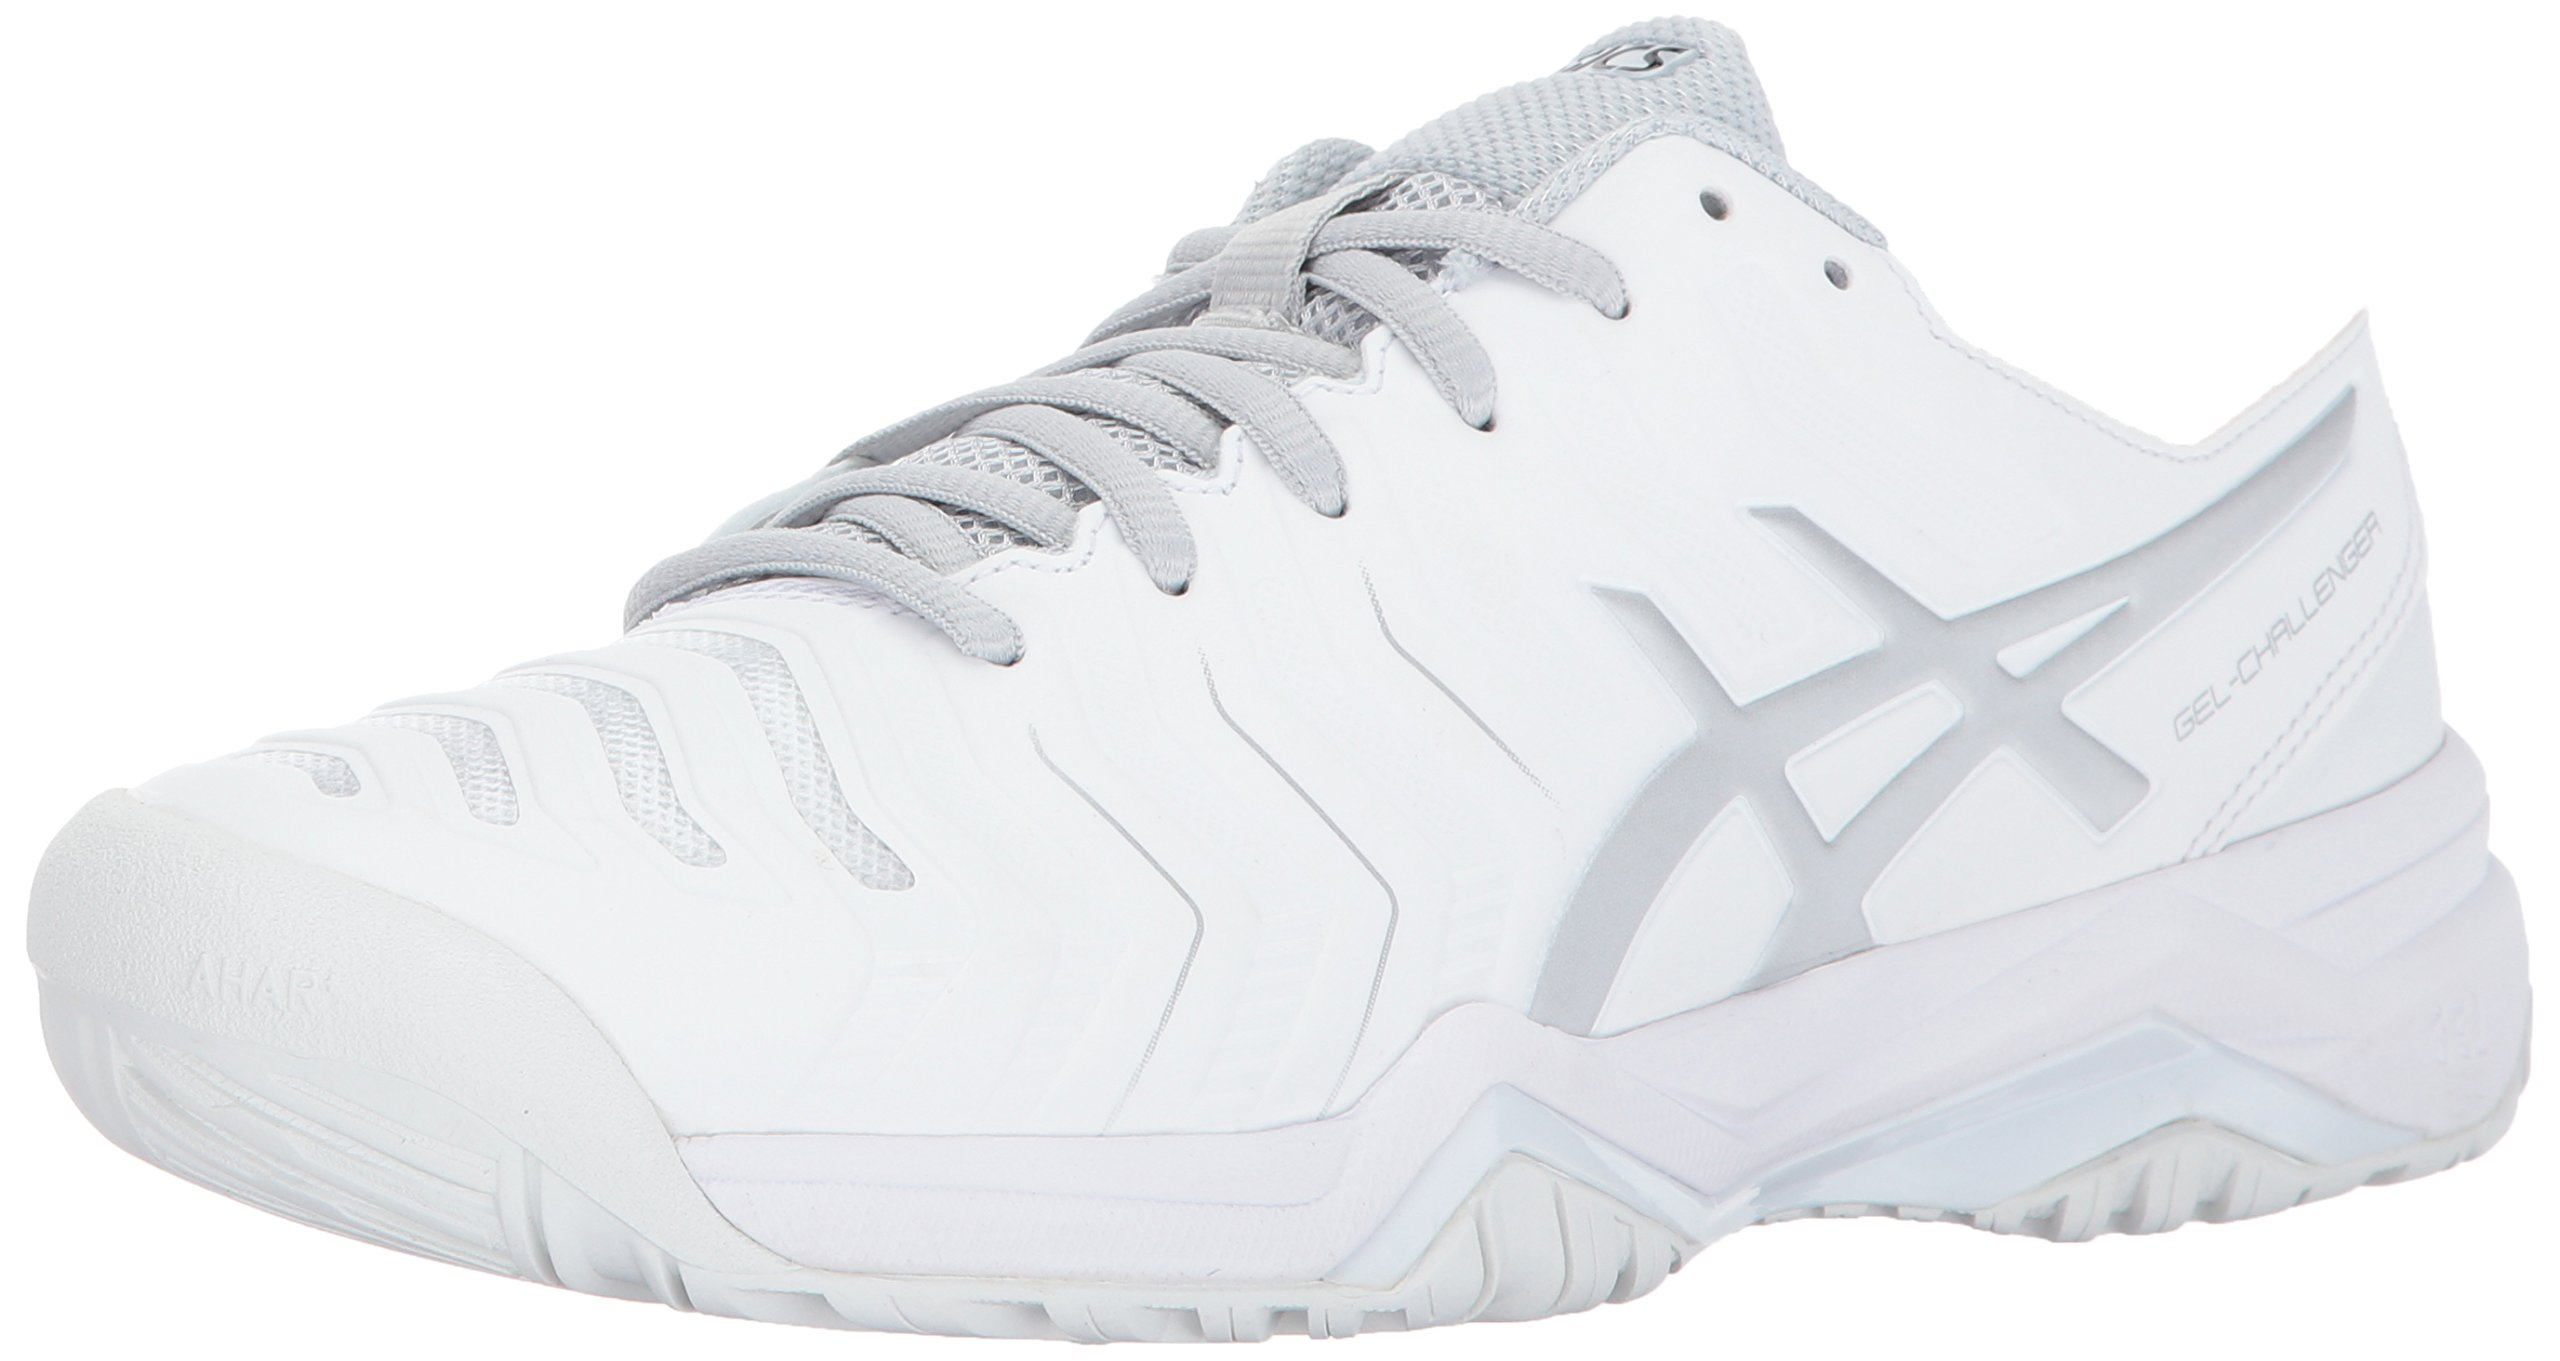 ASICS Women's Gel-Challenger 11 Tennis Shoe, White/Silver, 10 Medium US